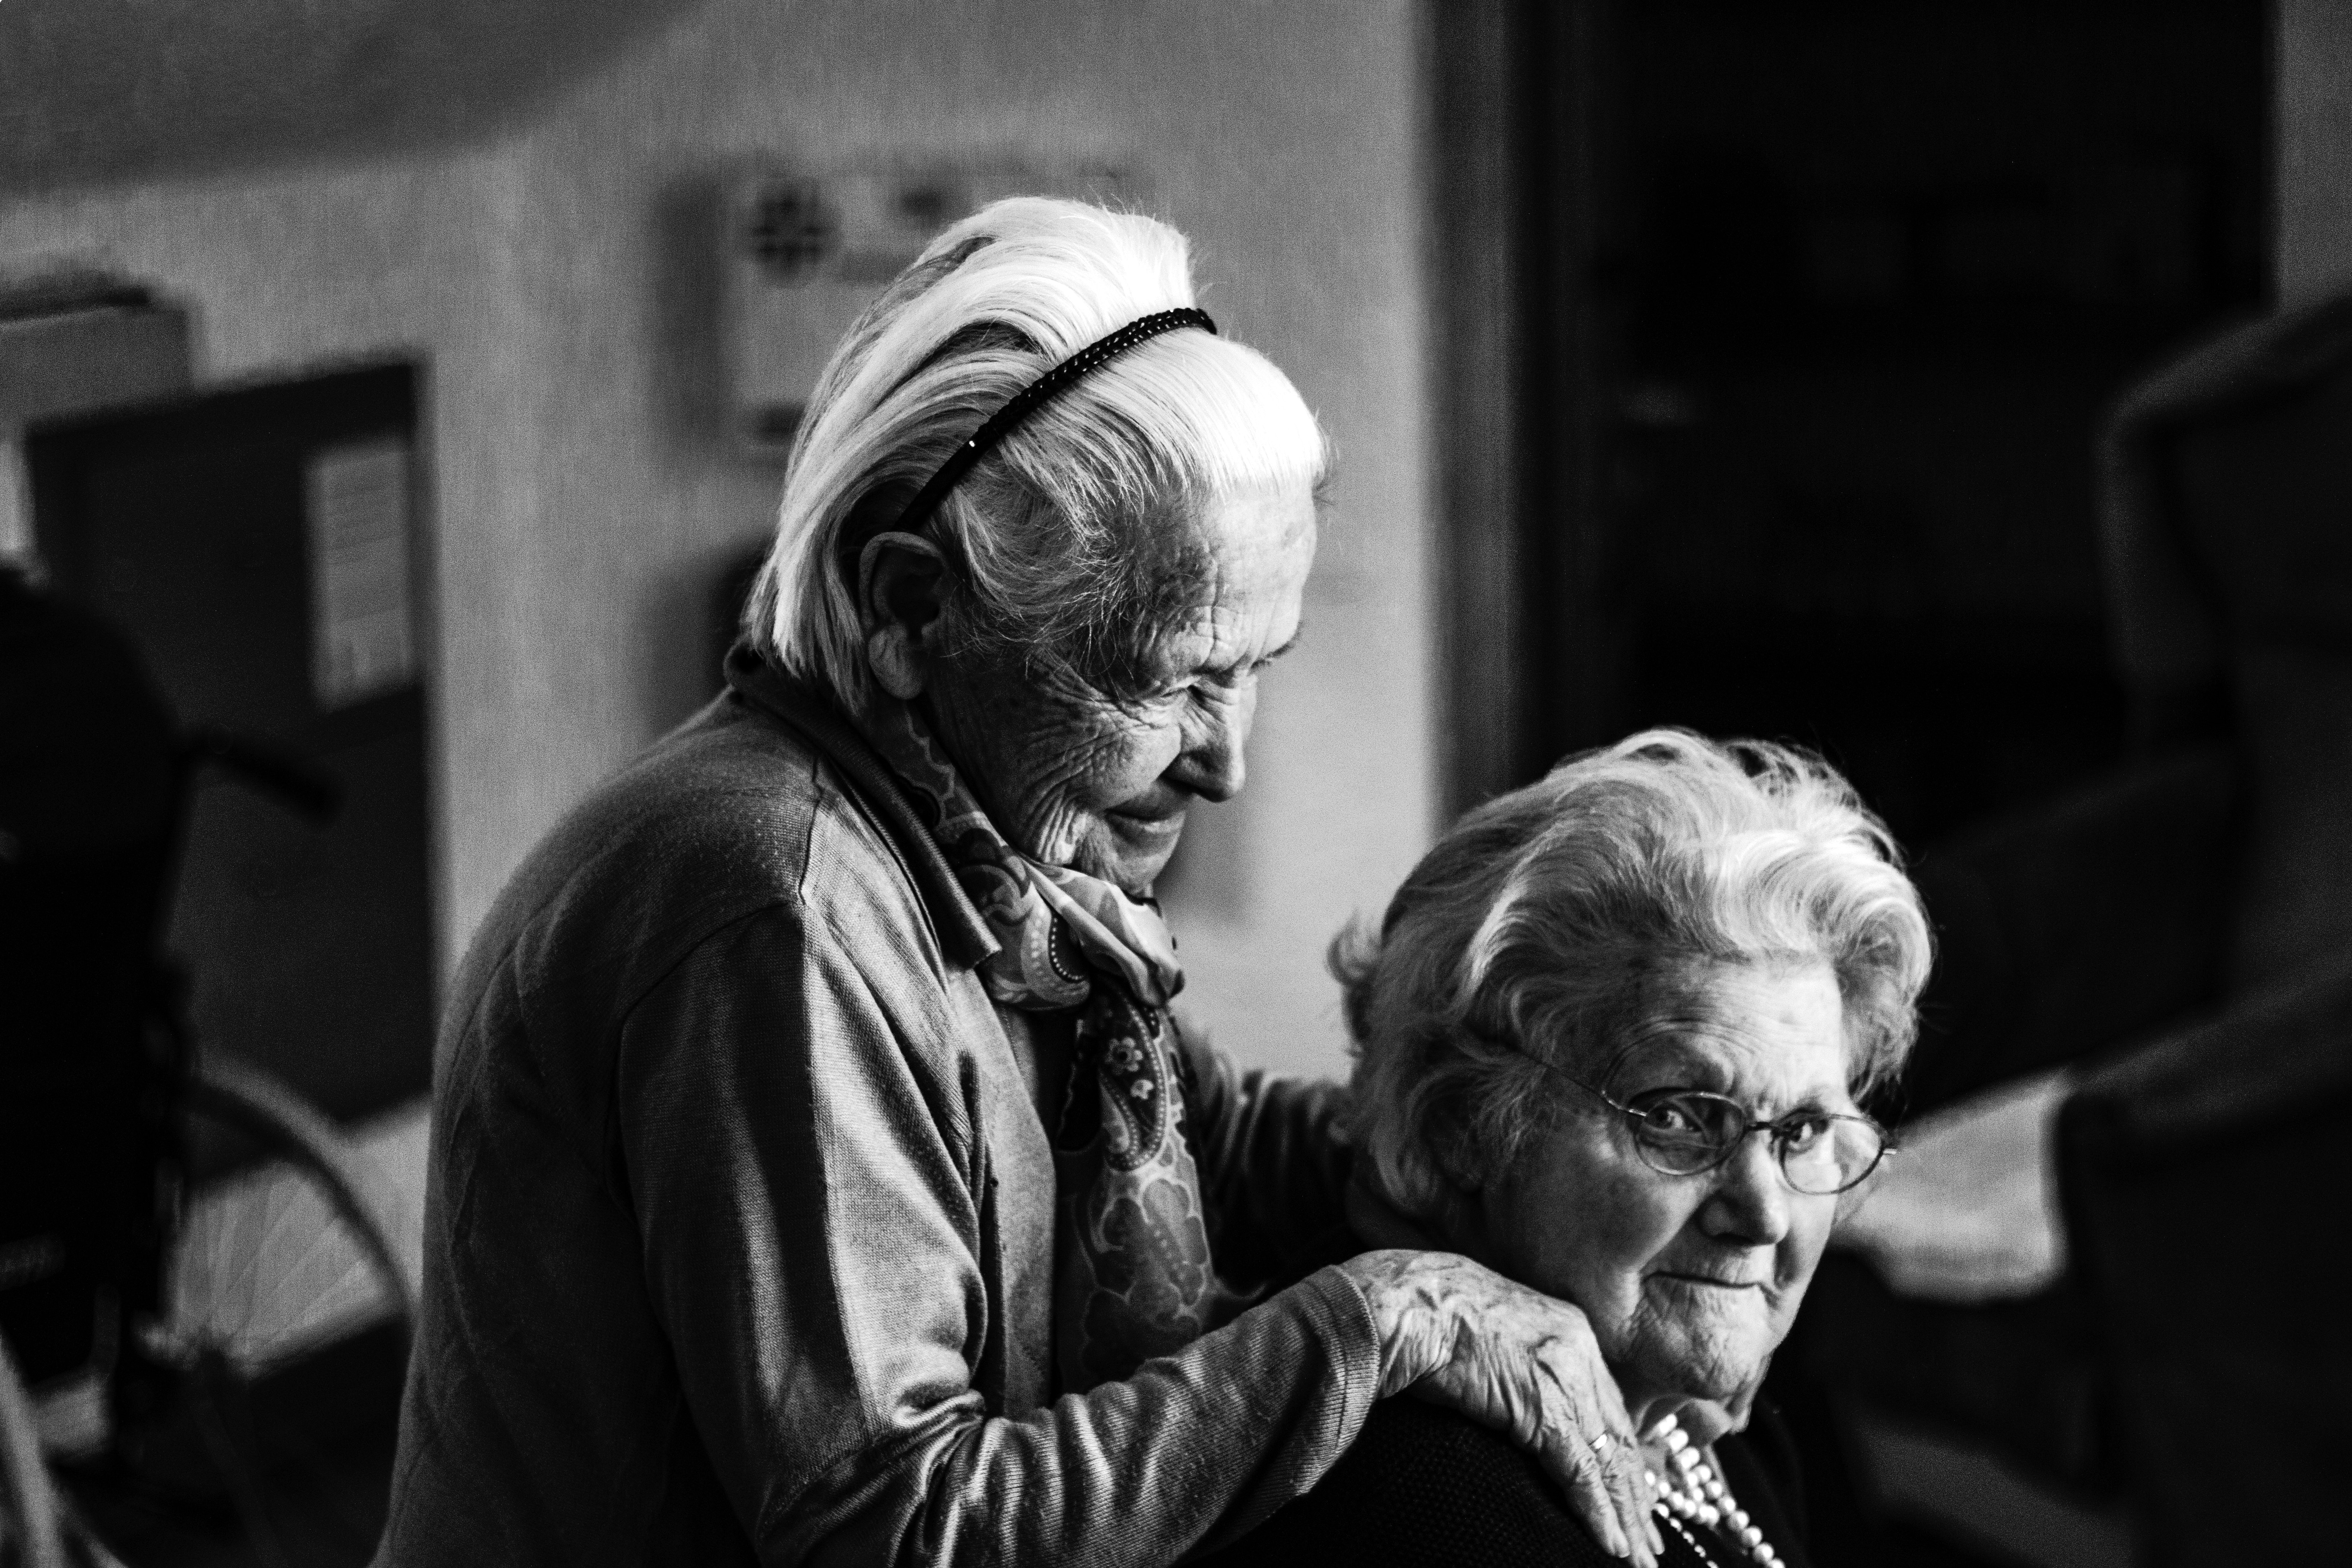 Two elderly women with hands on shoulder